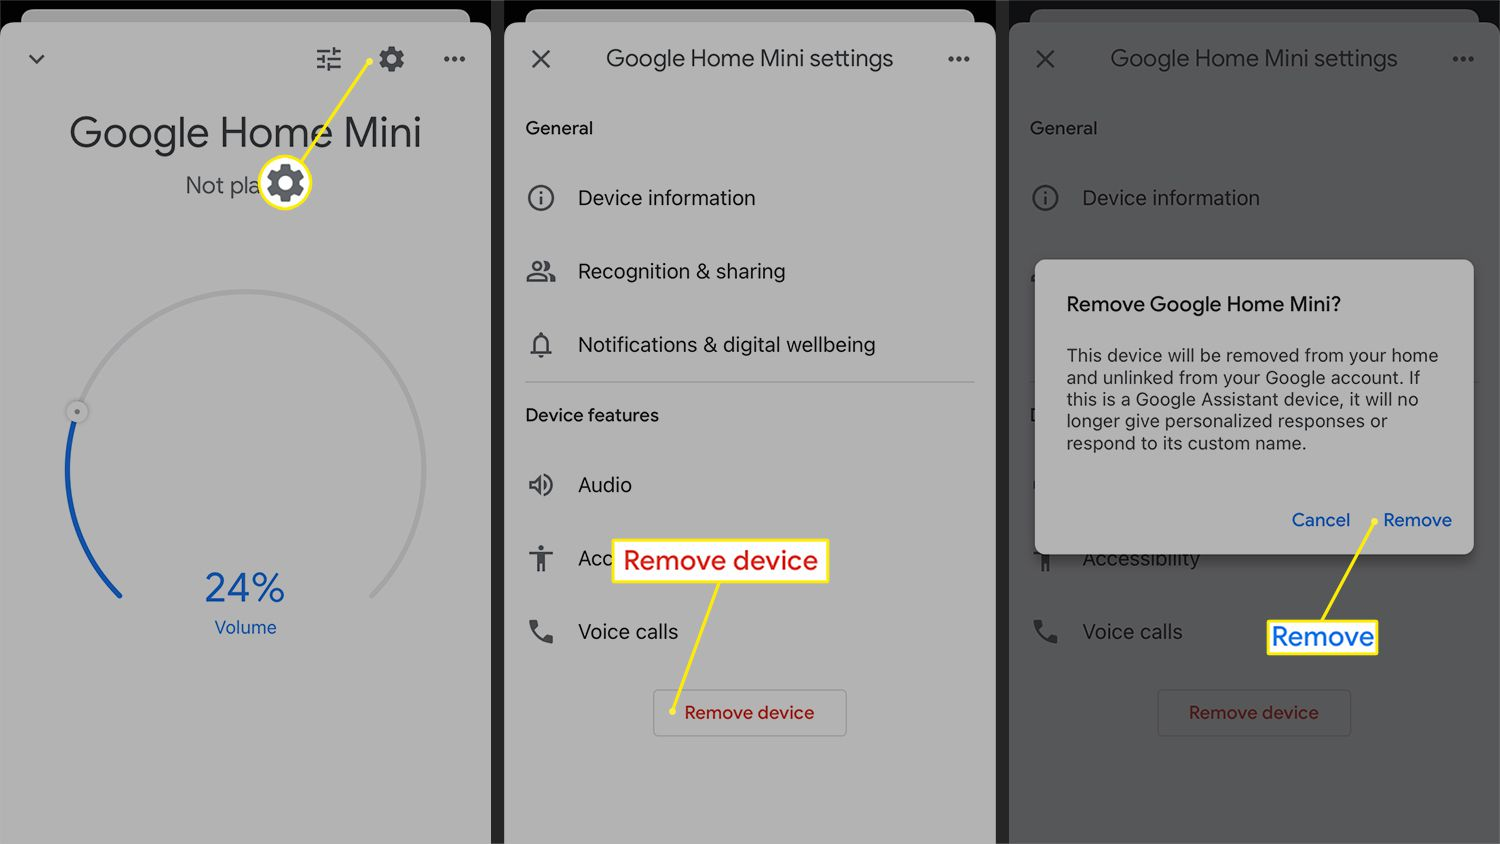 The Remove device option from the Google Home app